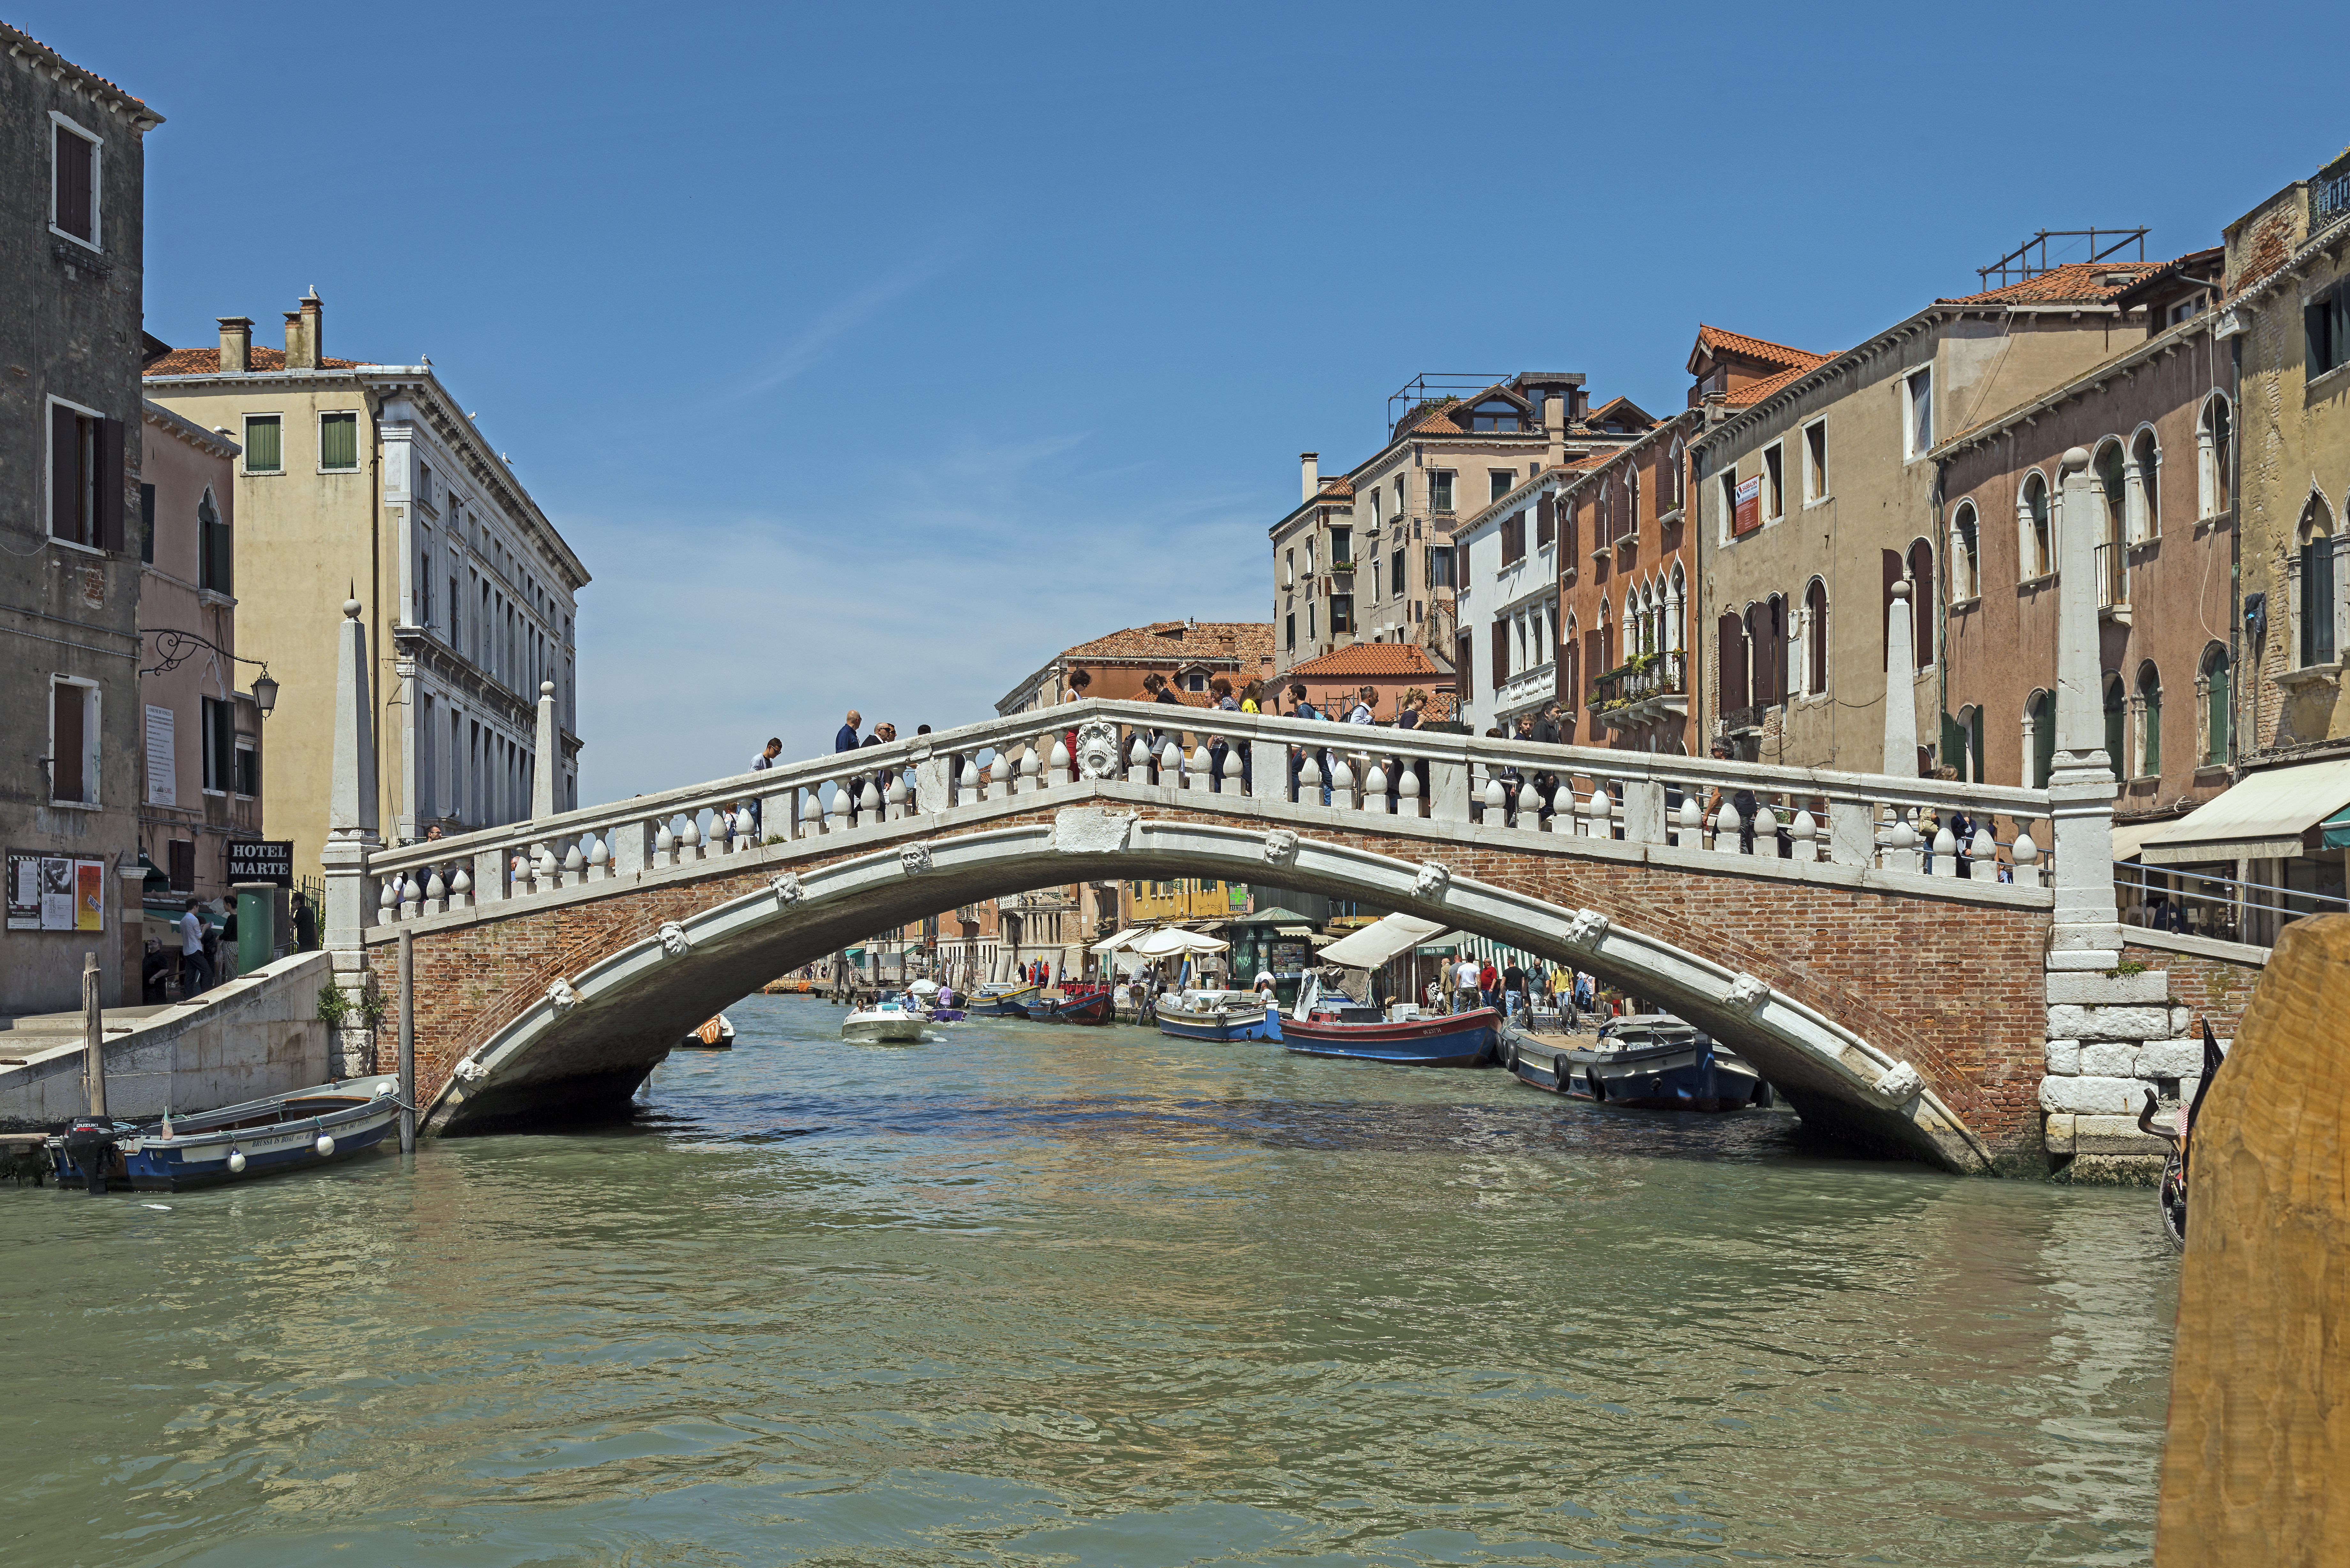 https://upload.wikimedia.org/wikipedia/commons/7/7f/Ponte_delle_Guglie_%28Venice%29.jpg